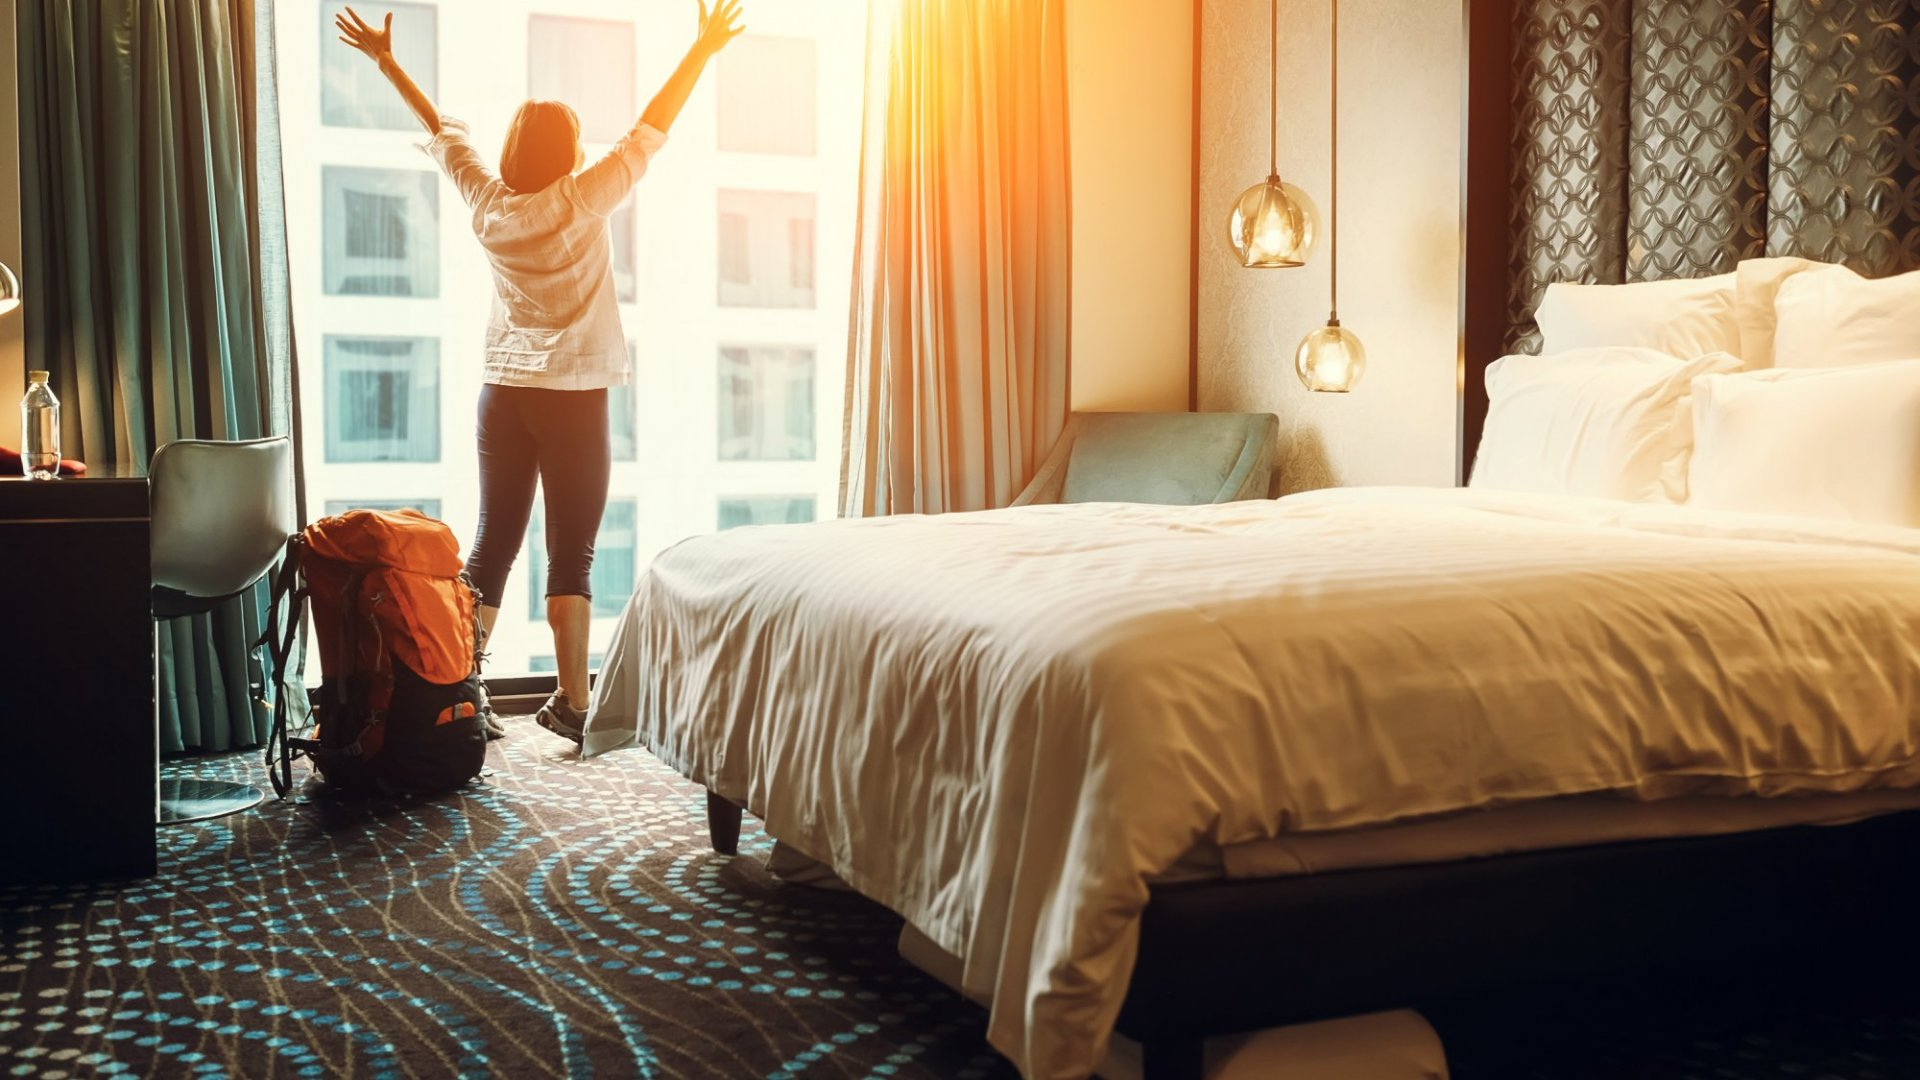 These 7 Incredibly Smart Hotel Tricks Will Help You Sleep Better in Any Hotel